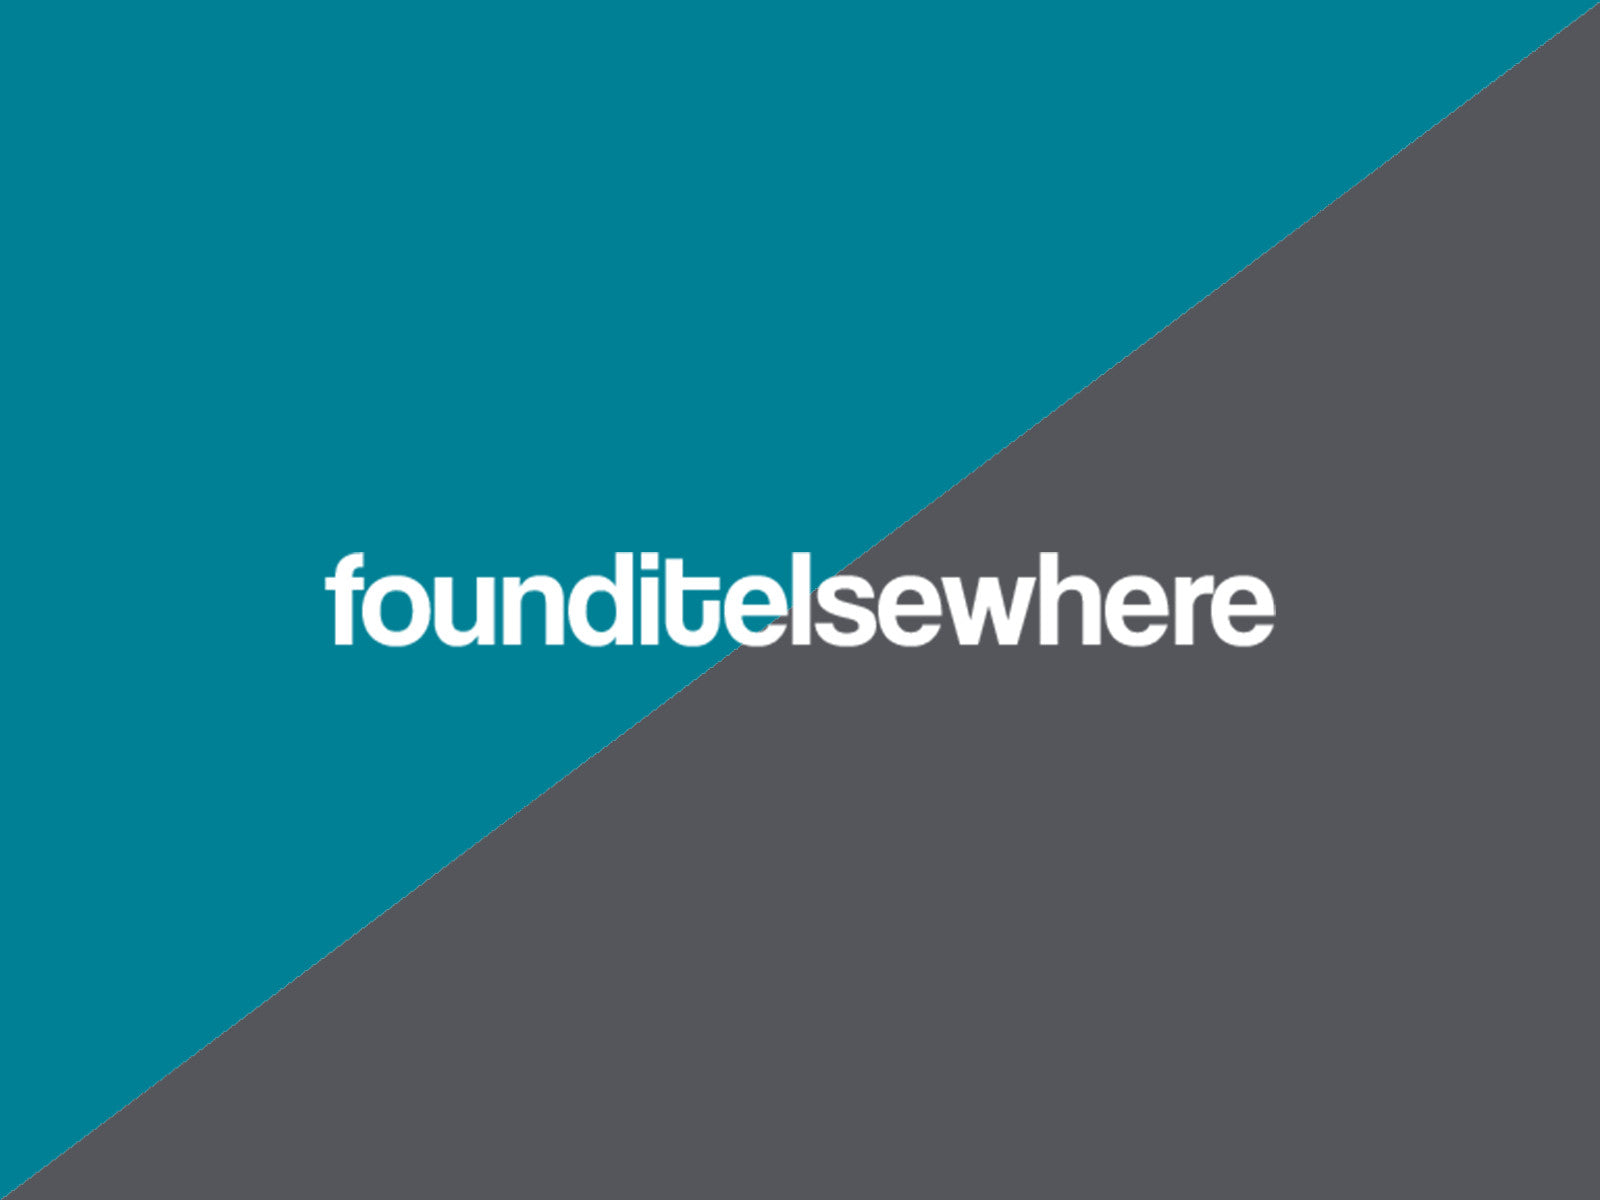 founditelsewhere